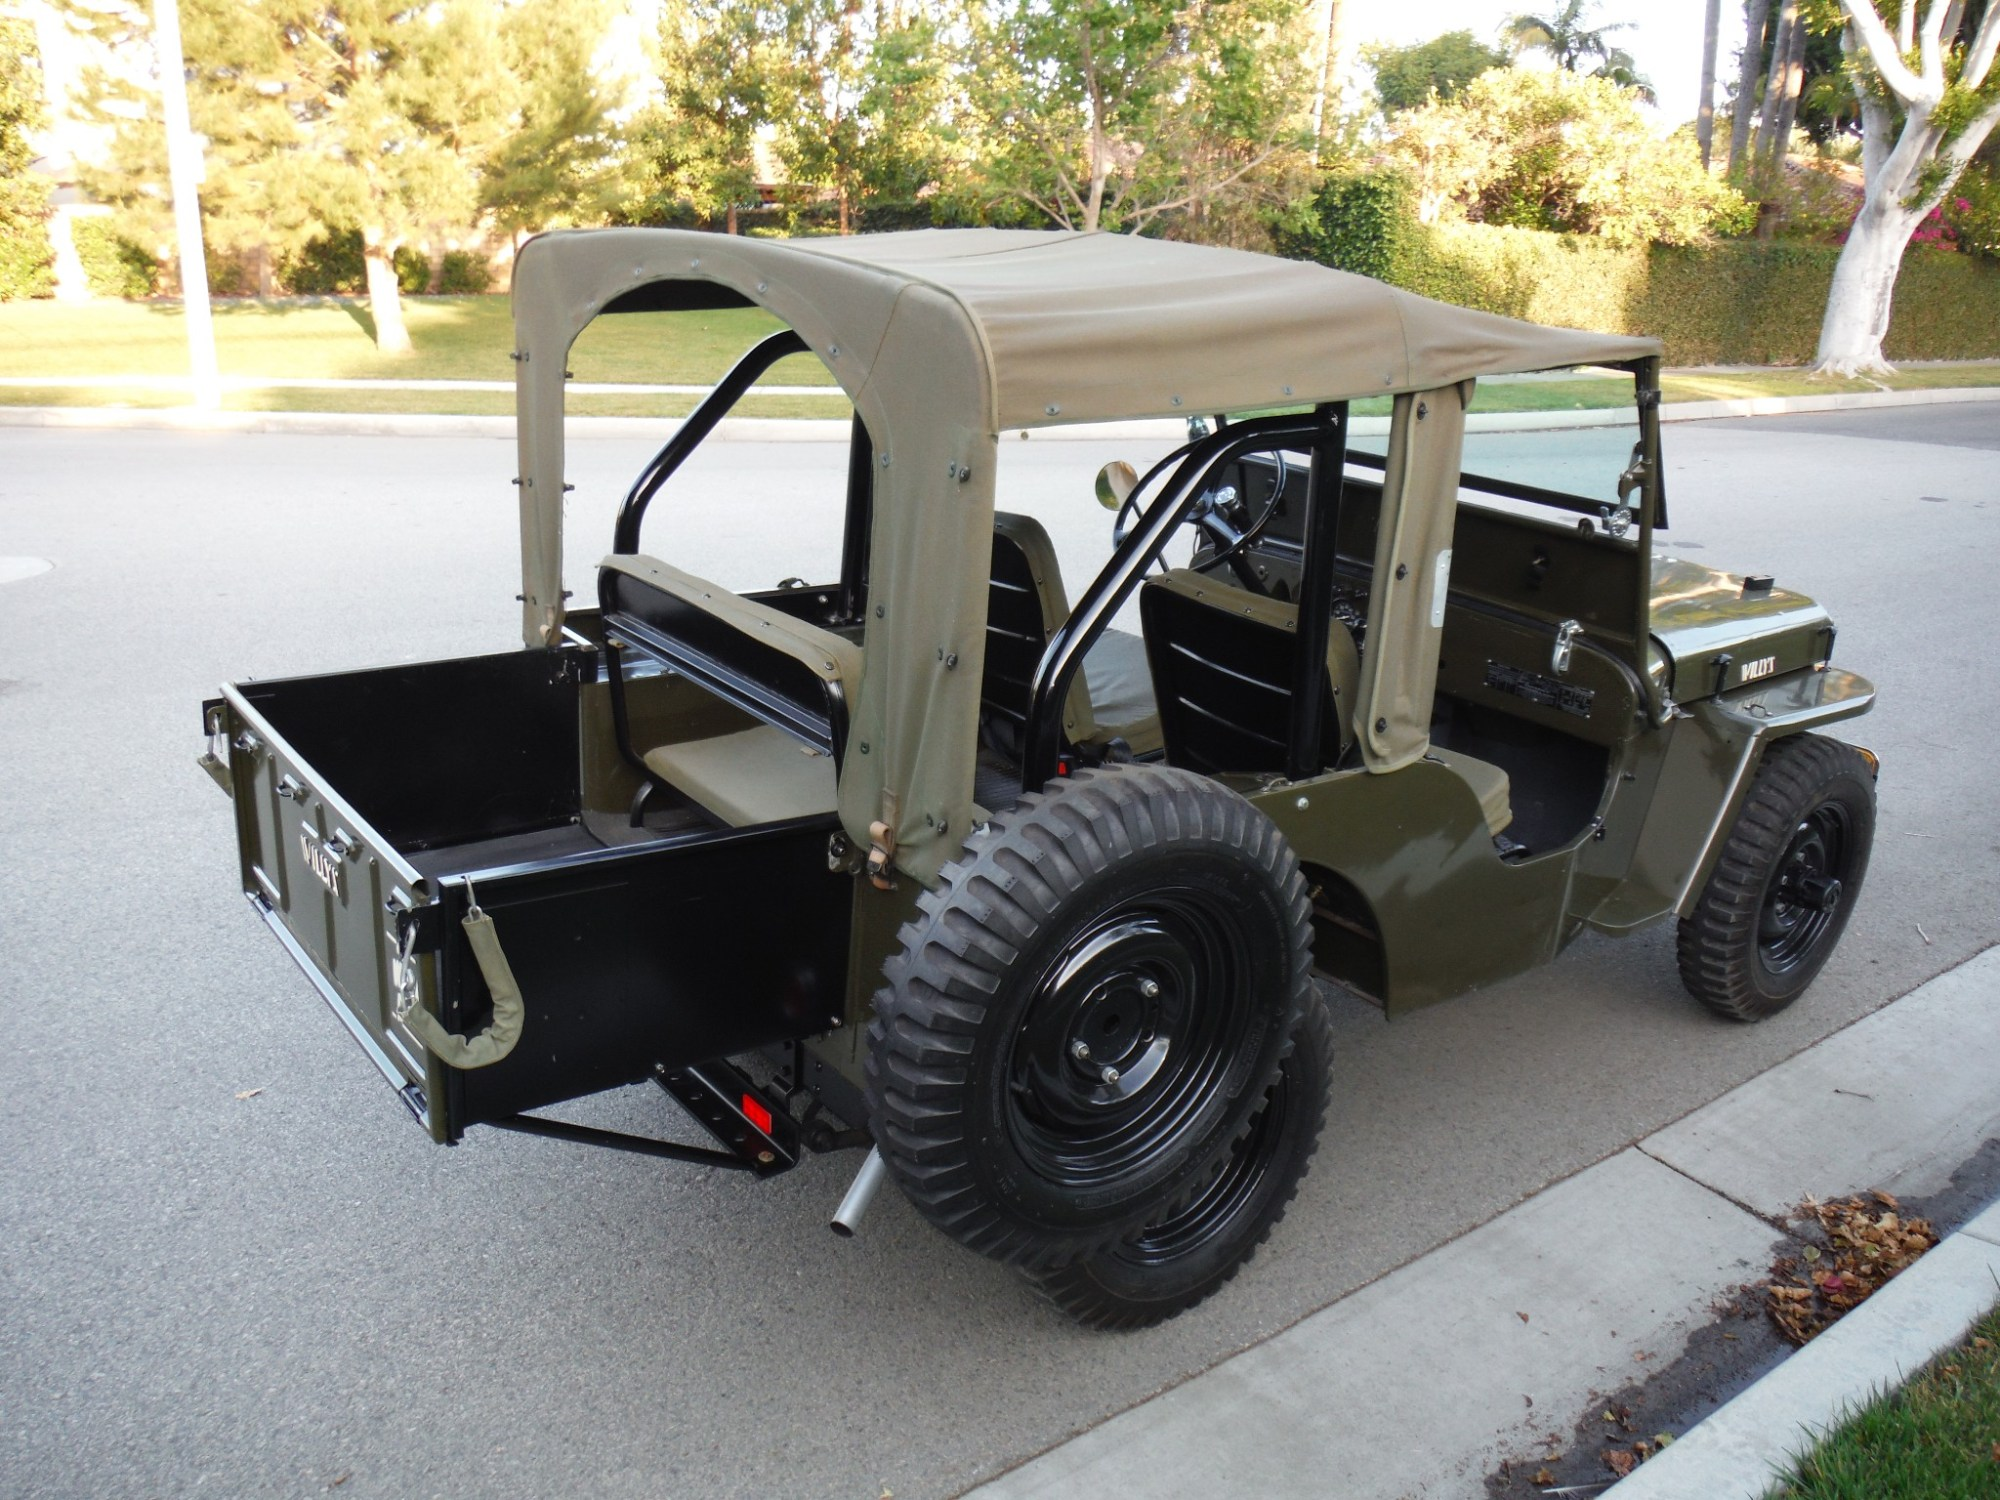 hight resolution of this 1947 willys jeep cj2a has an attachable tray that adds pick up style carrying